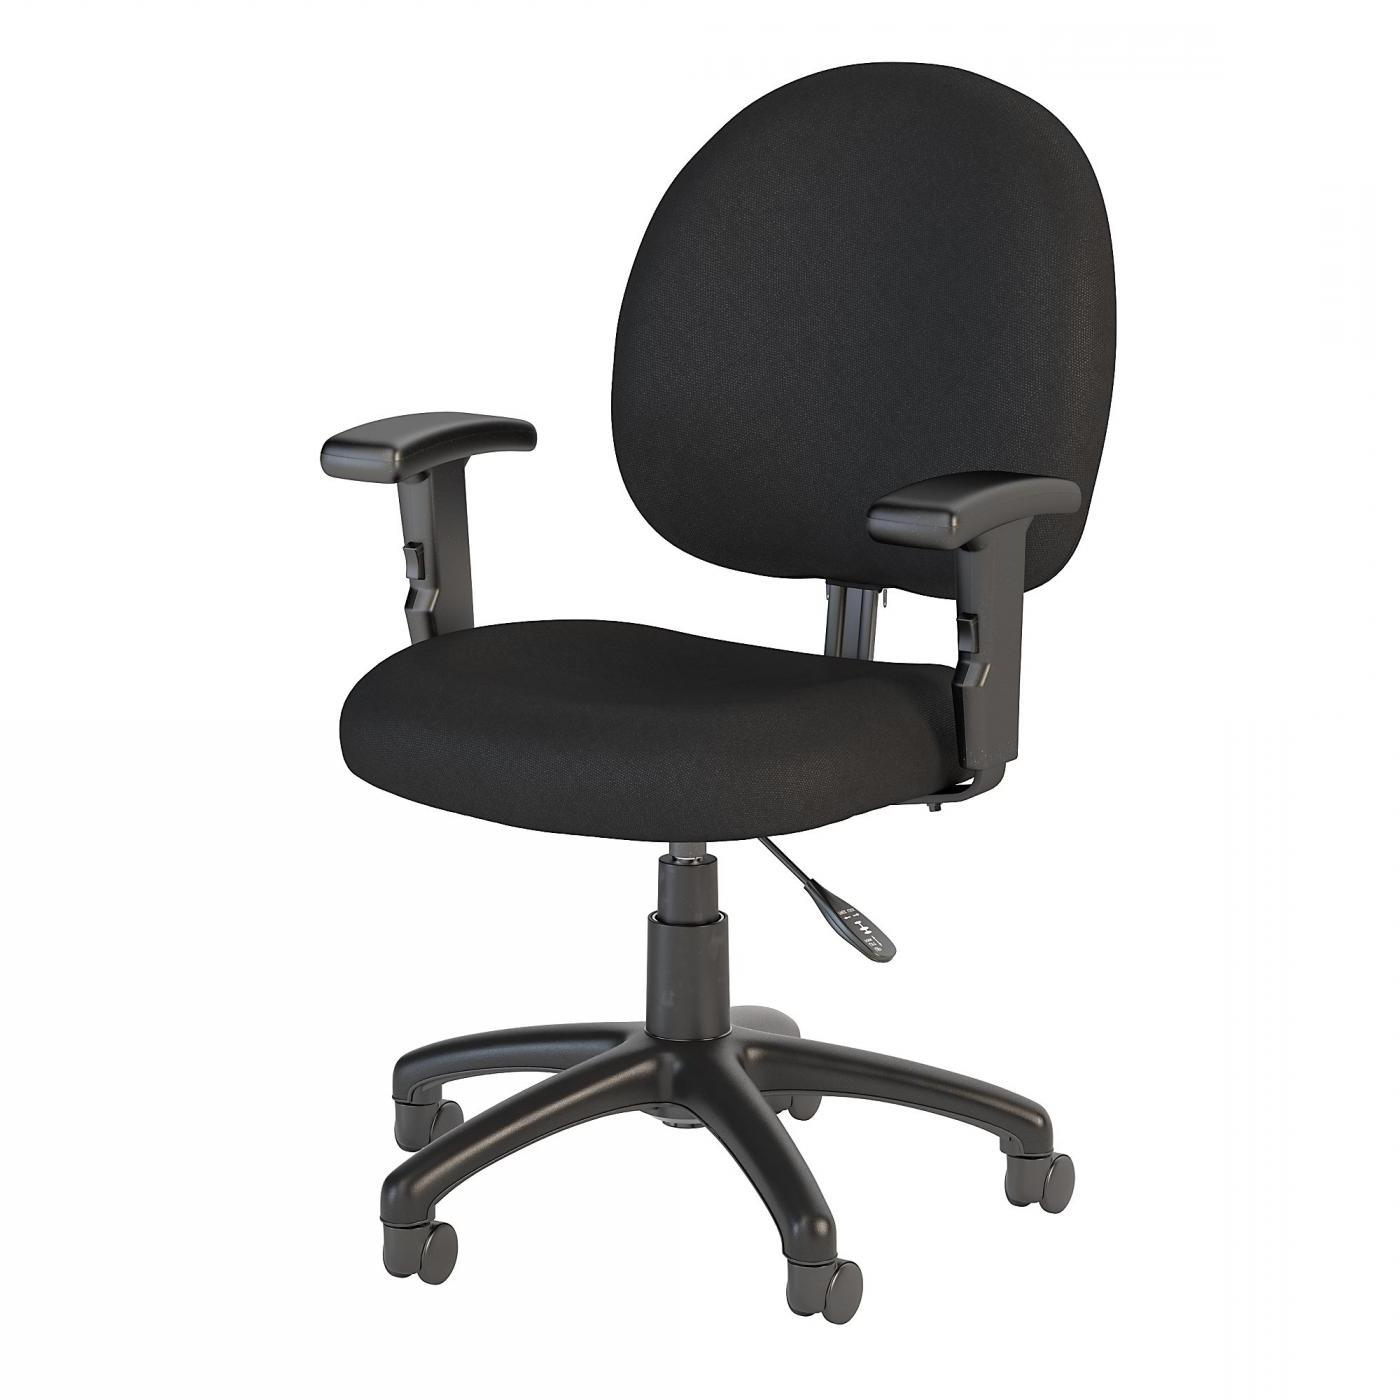 <font color=#c60><b>BUSH BUSINESS FURNITURE ACCORD TASK CHAIR WITH ARMS. FREE SHIPPING</font></b> </font></b></font></b>